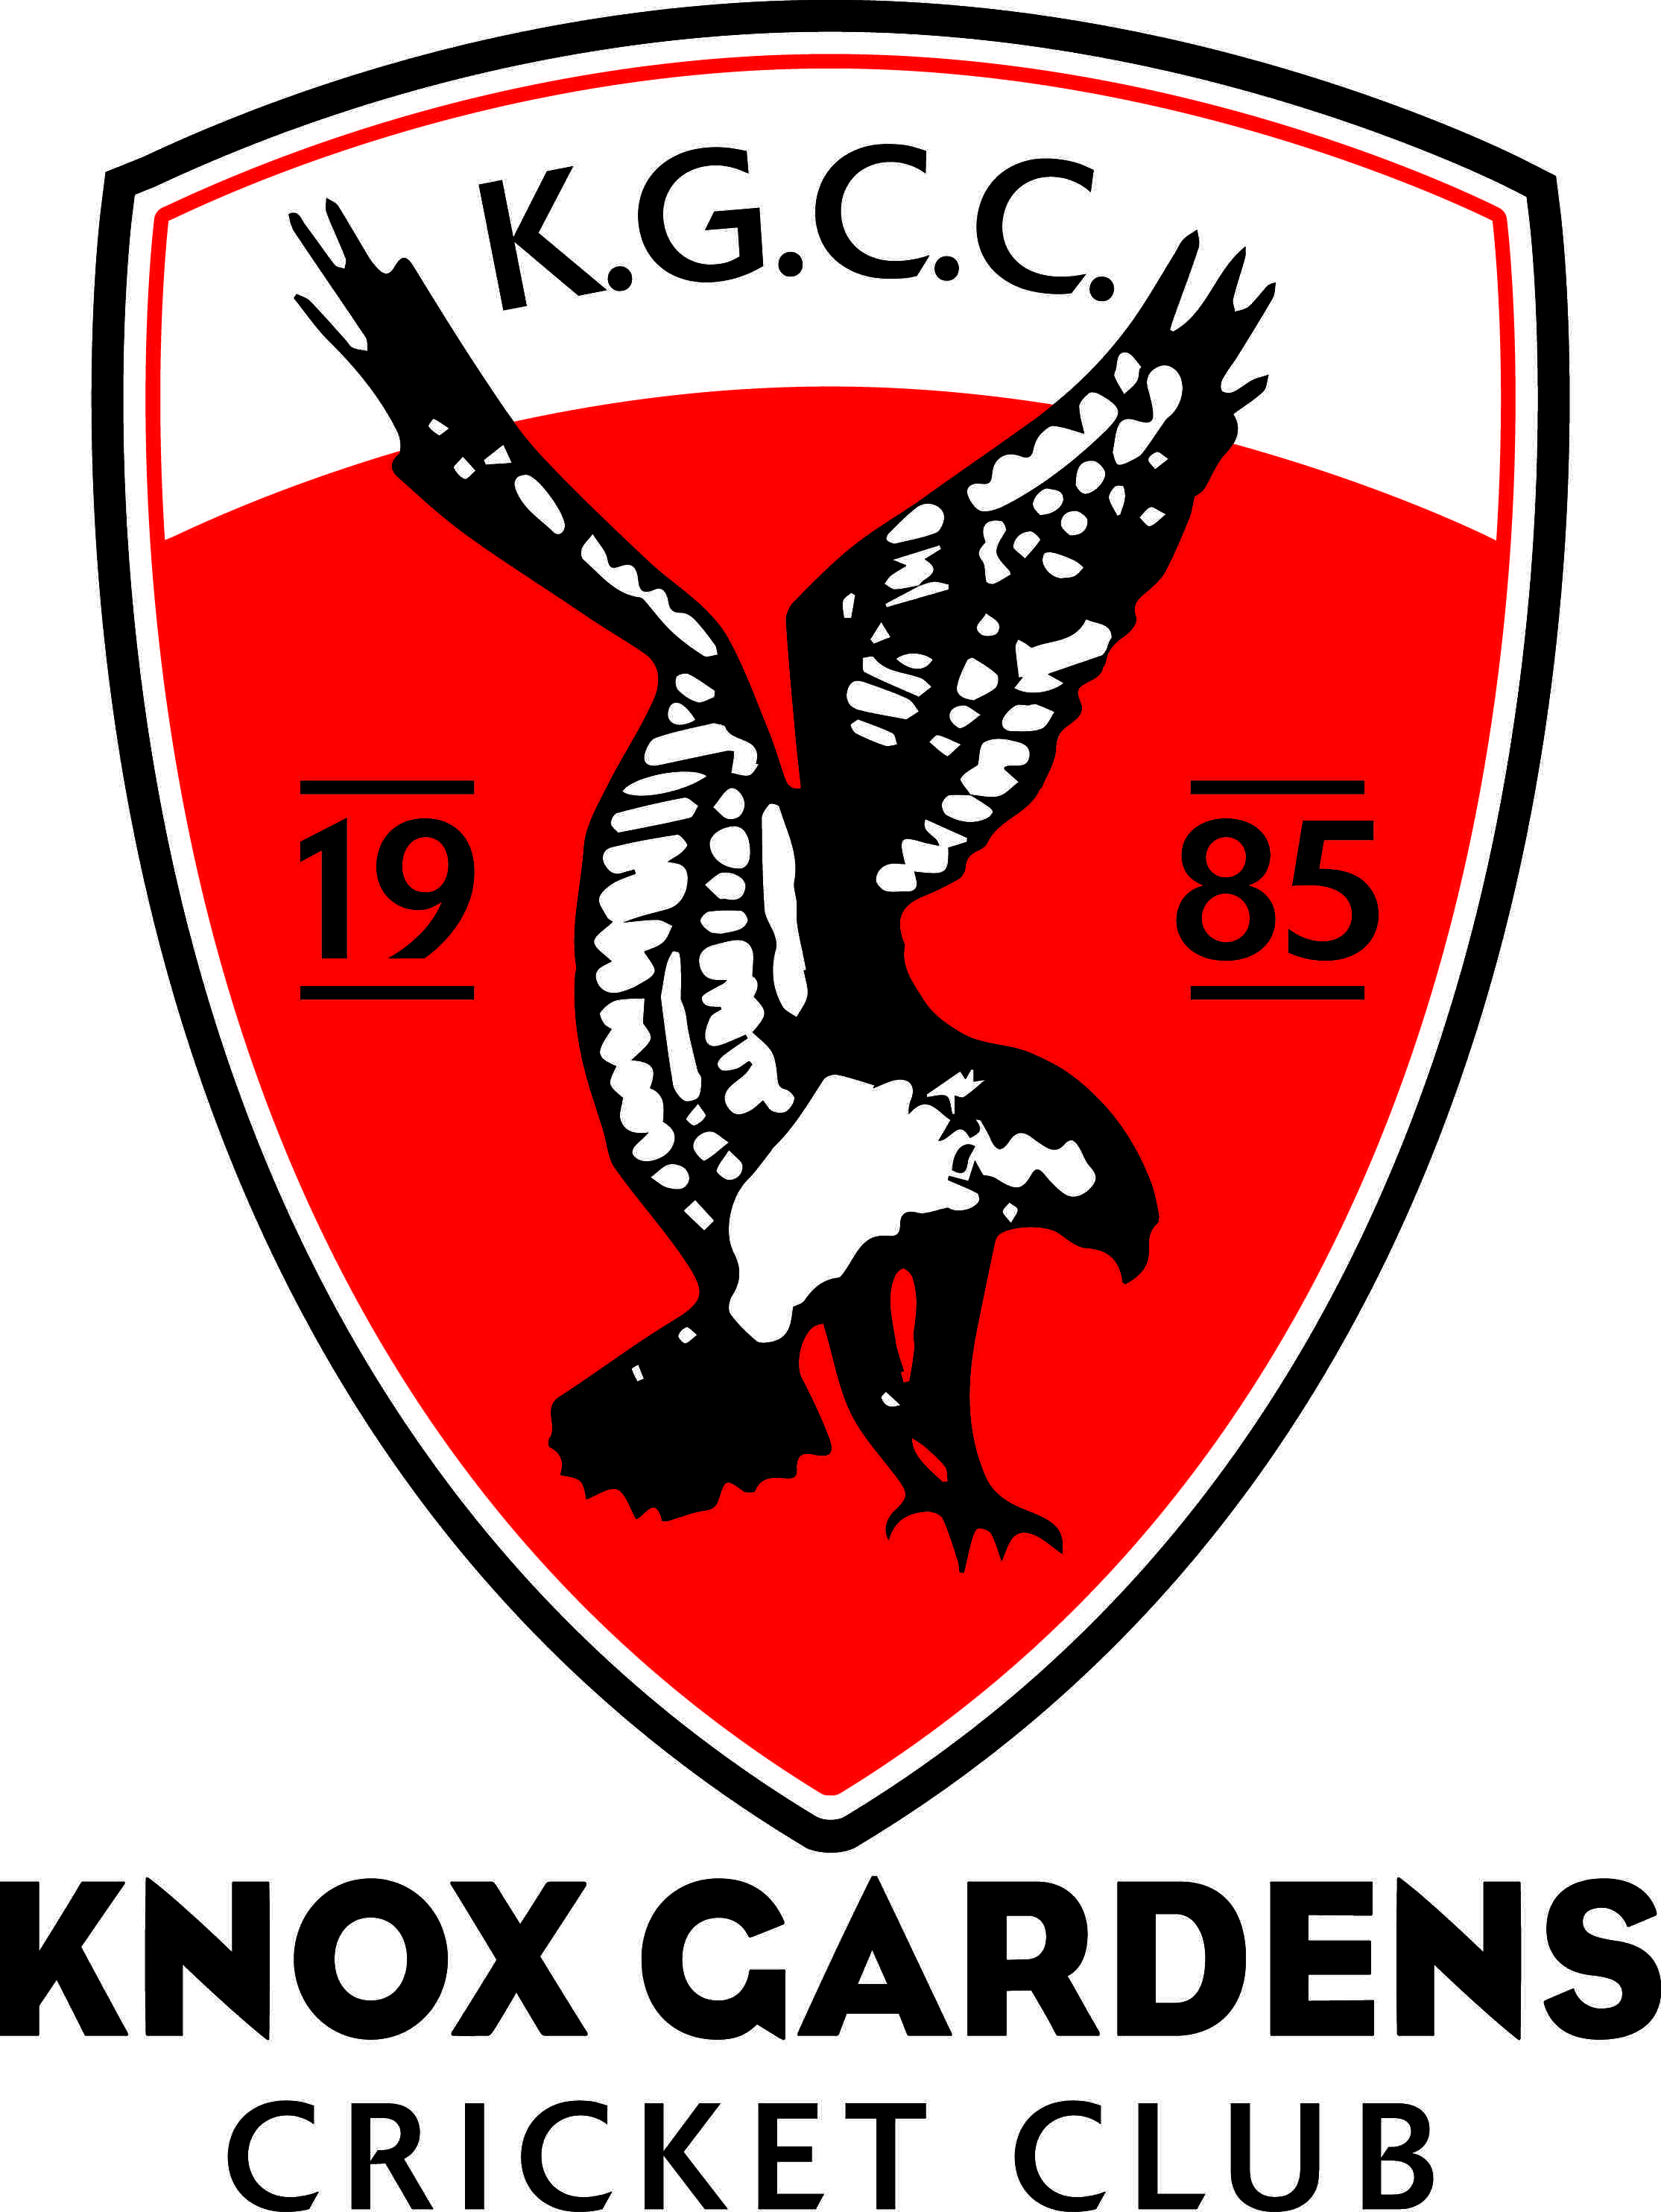 Knox Gardens Cricket Club